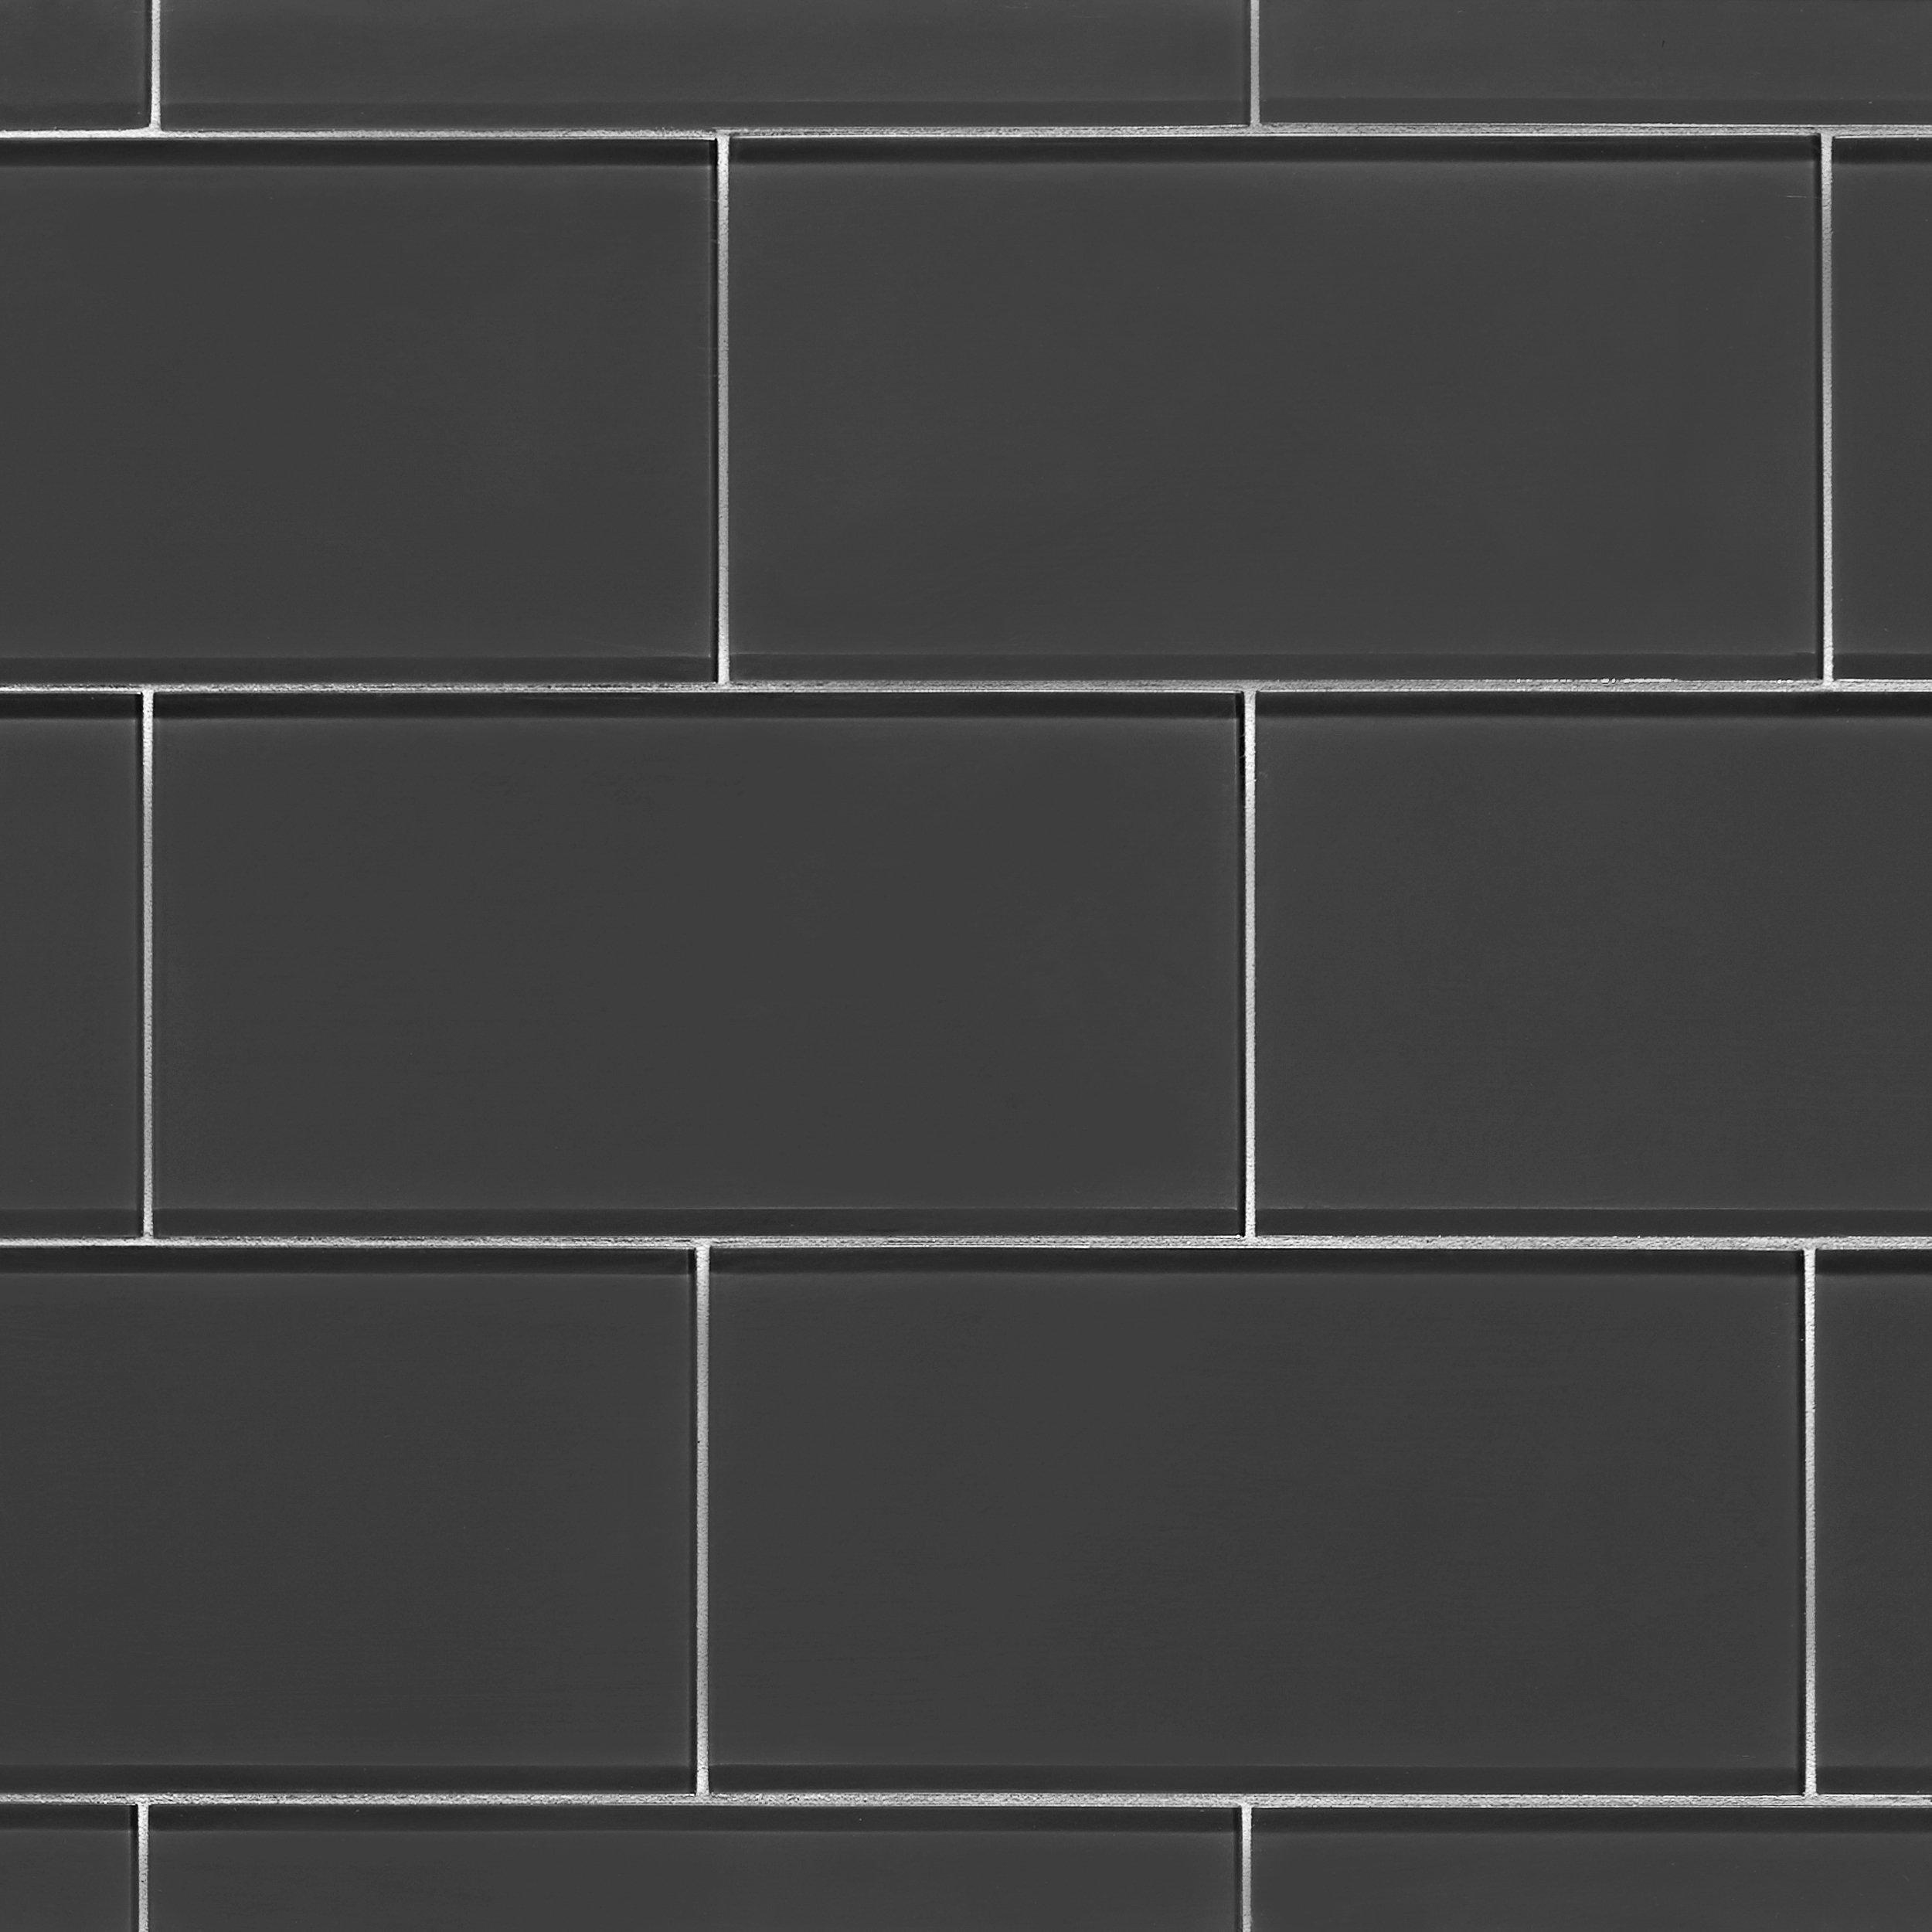 6x12 subway tile free bright white ice subway ceramic wall tile 6x12 subway tile with 6x12 subway tile dailygadgetfo Image collections